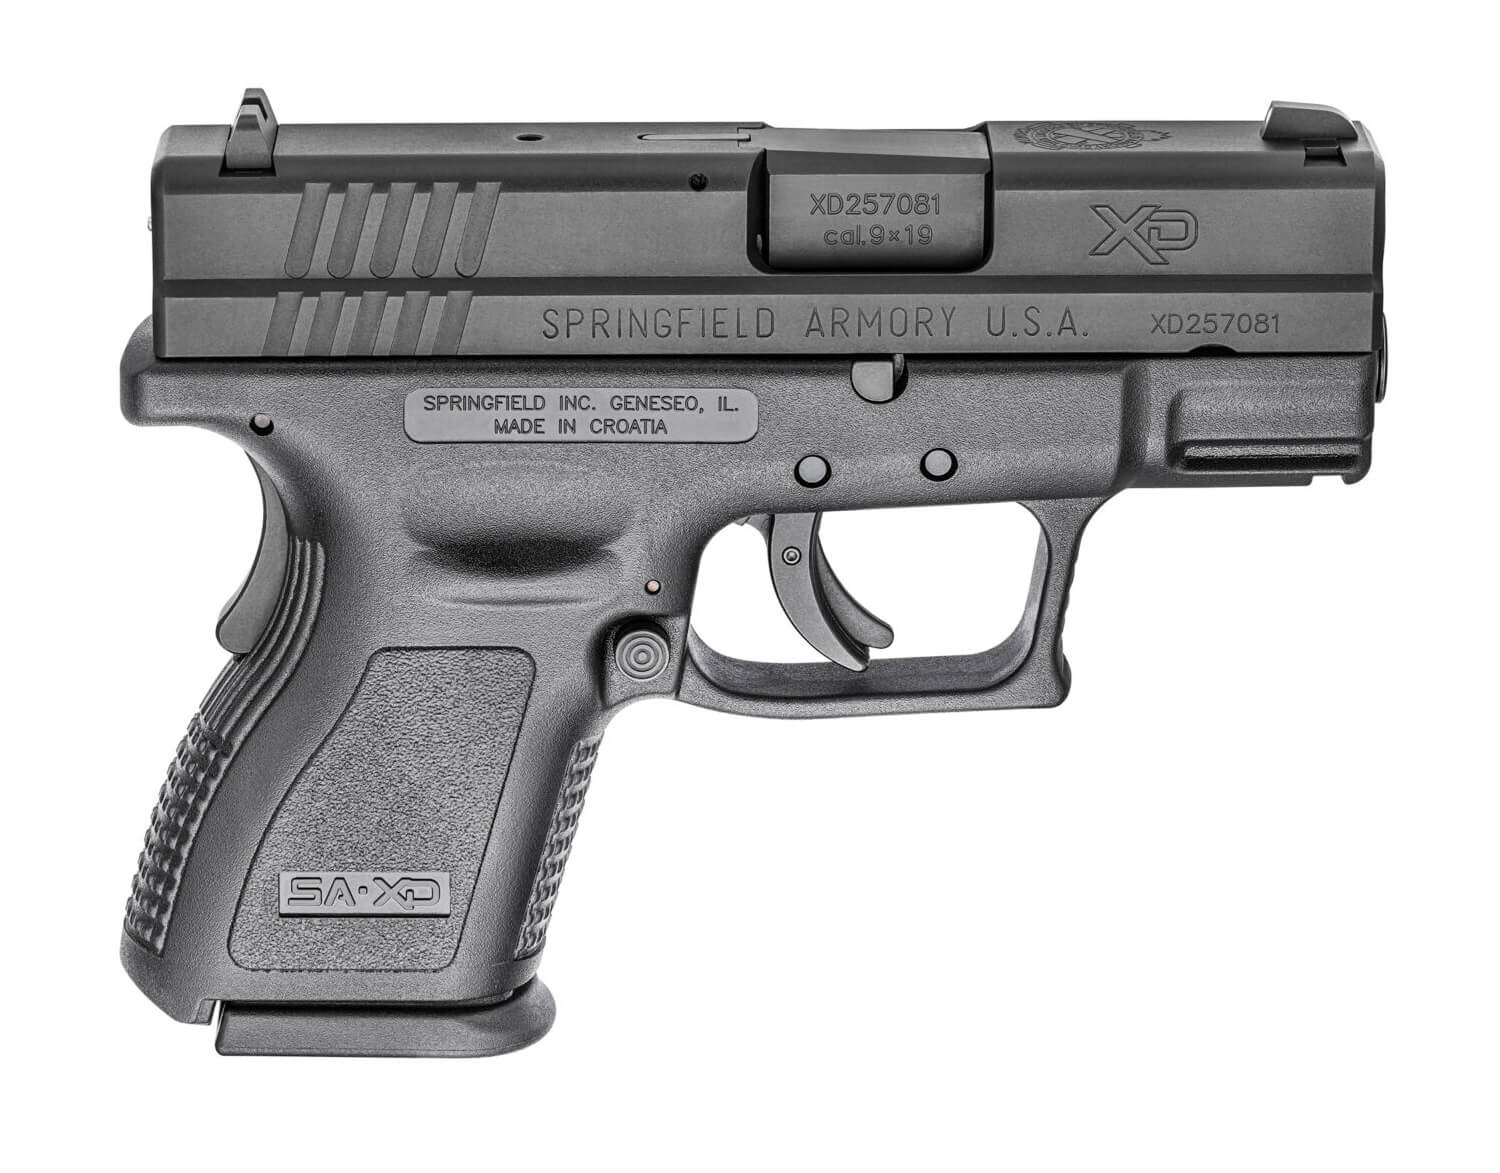 Springfield Armory XD Sub-Compact side view